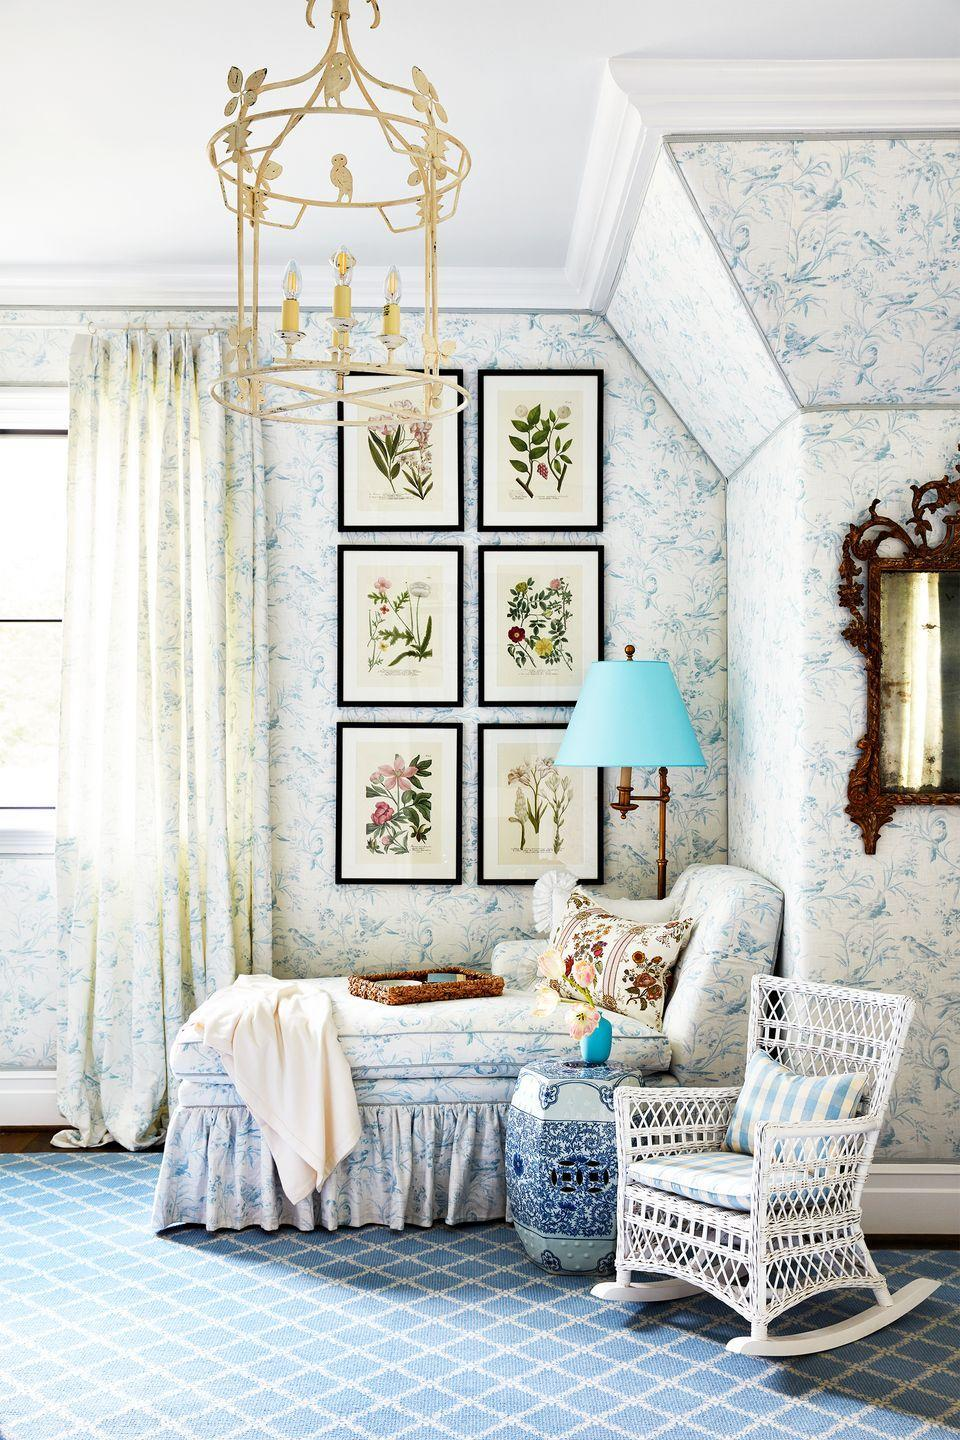 """<p>Who says gender neutral nurseries can't also boast traditional decor? A sweet shade of blue, along with whimsical patterns, and delicate furniture is a go-to for a reason. <a href=""""https://www.housebeautiful.com/room-decorating/a29342573/whole-home-2019-kids-rooms/"""" rel=""""nofollow noopener"""" target=""""_blank"""" data-ylk=""""slk:Amy Berry"""" class=""""link rapid-noclick-resp"""">Amy Berry</a> incorporated a chaise and rocking chair for reading and brought the room to life with a classic toile wallpaper and framed botanical prints. It's a lovely place for any baby to grow.</p>"""